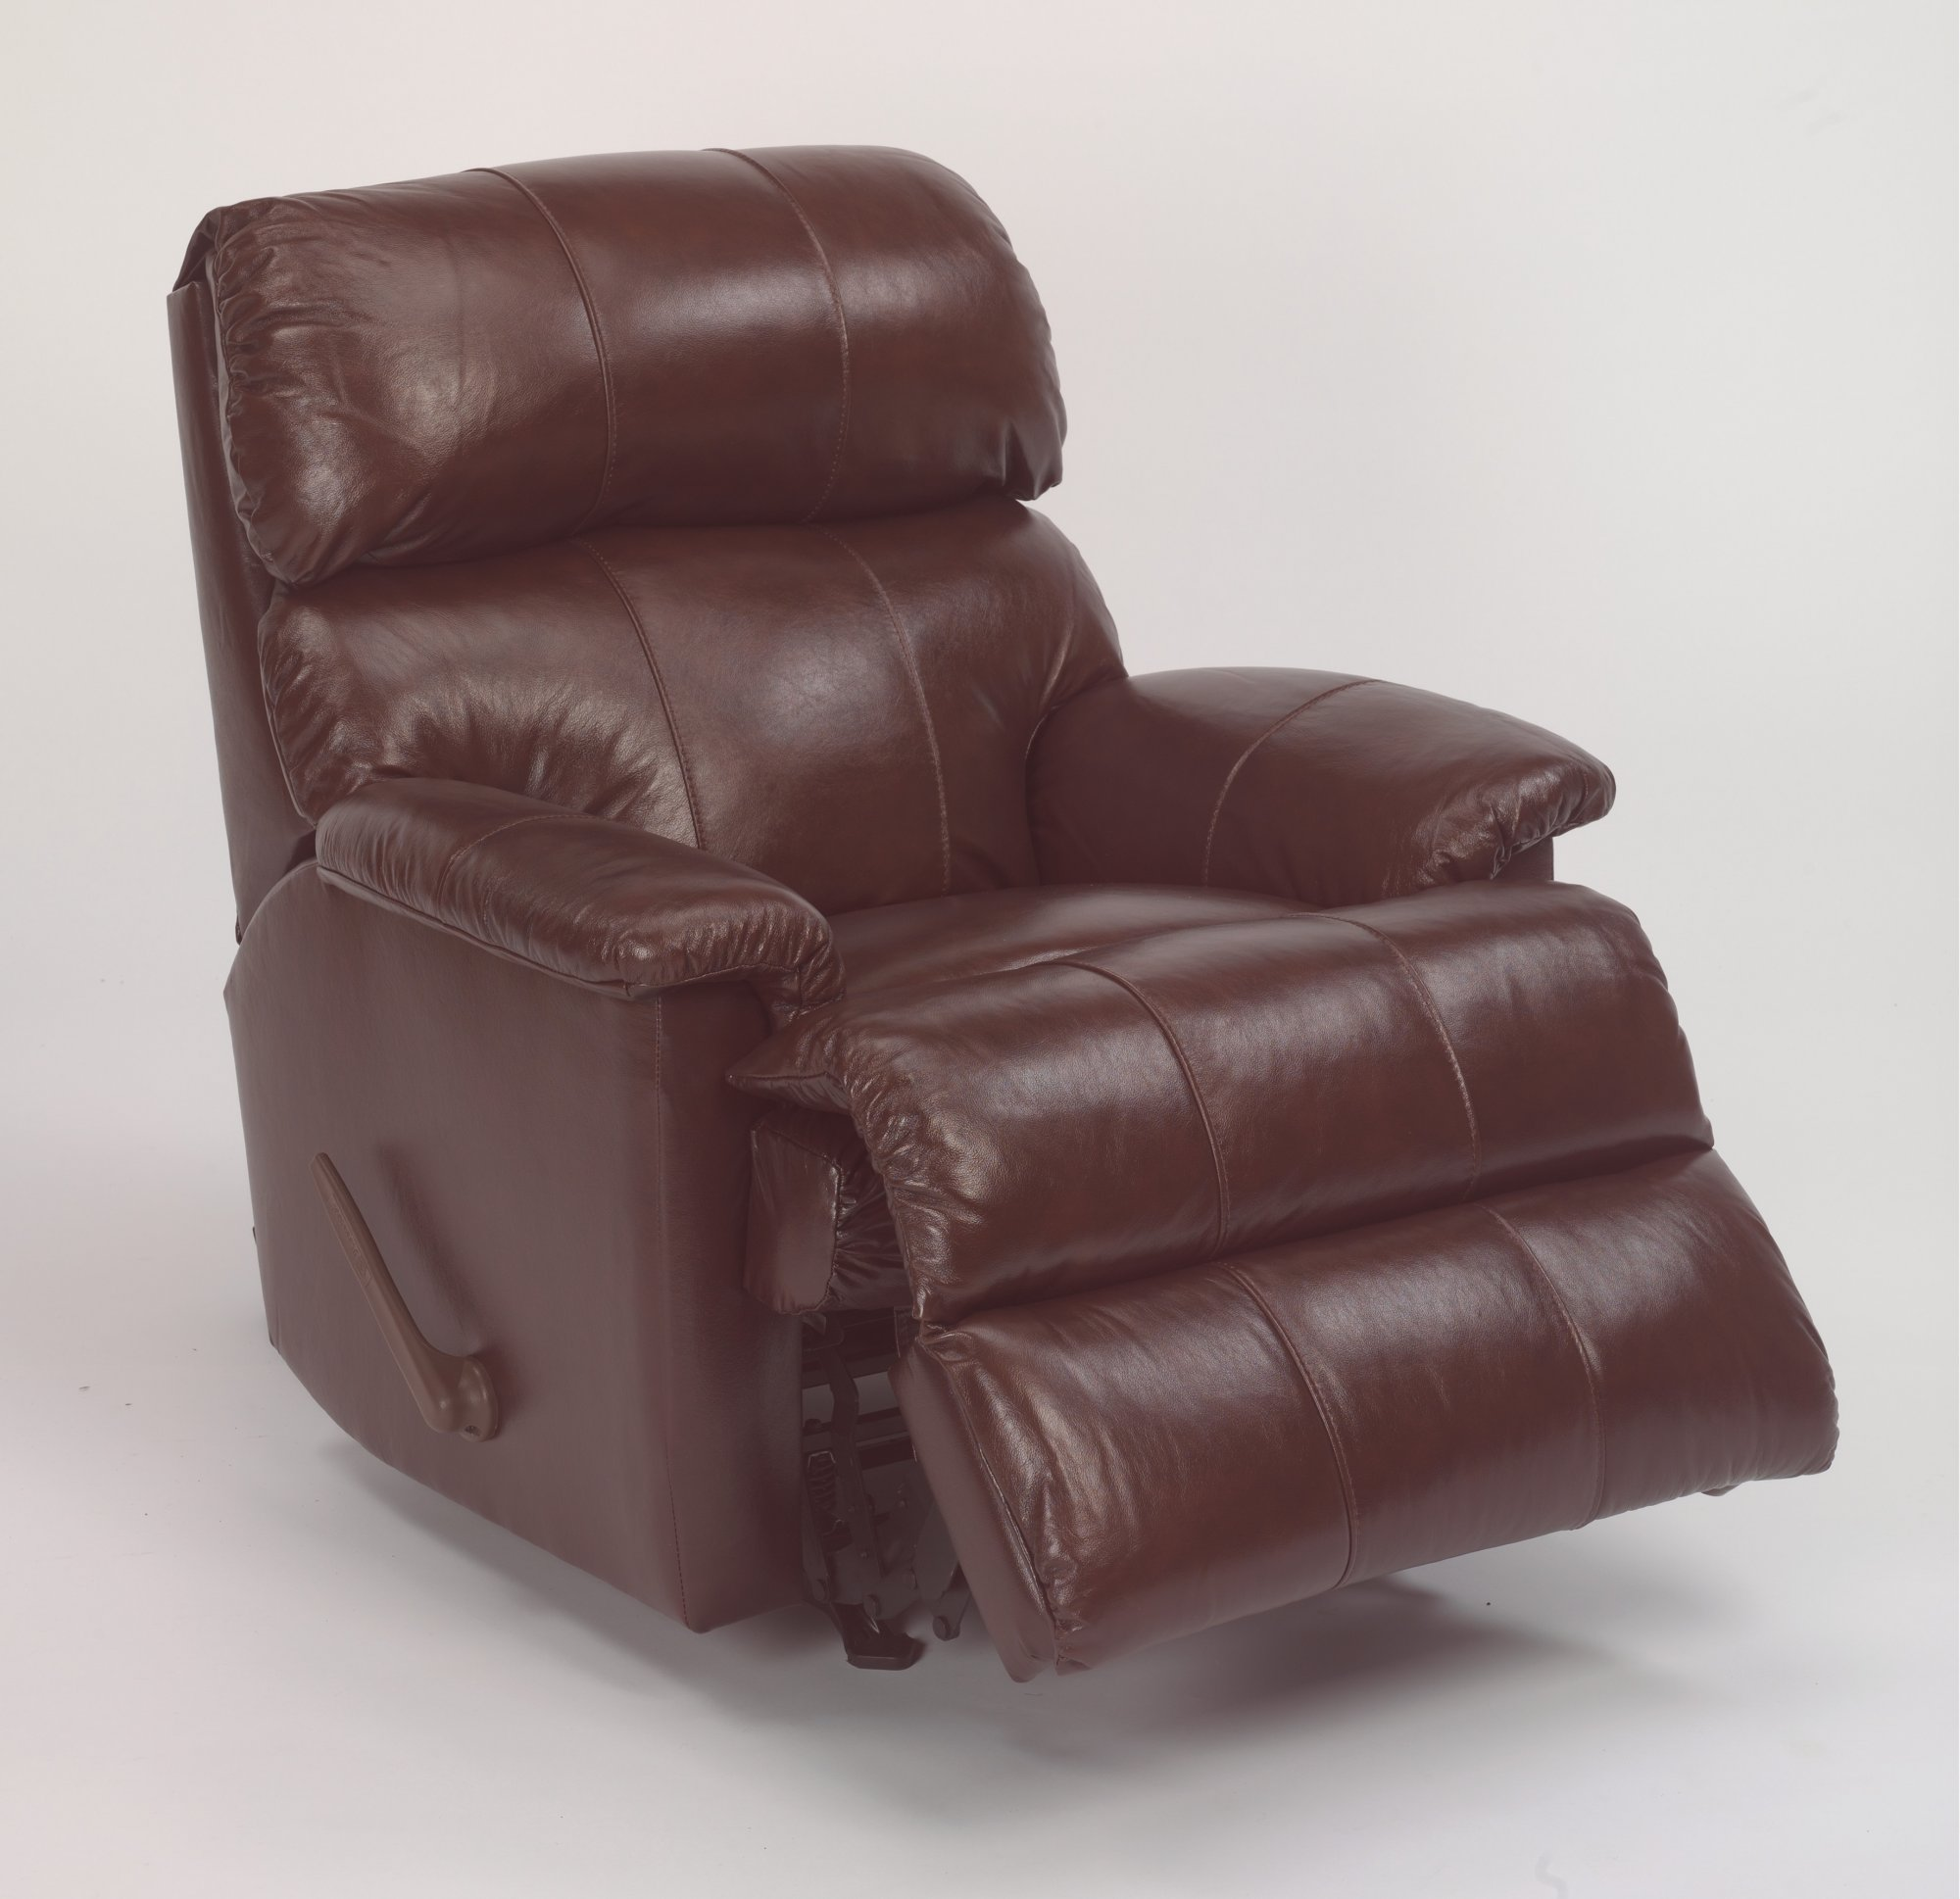 Swell Flexsteel 3266 510 Chicago Leather Rocking Recliner Caraccident5 Cool Chair Designs And Ideas Caraccident5Info